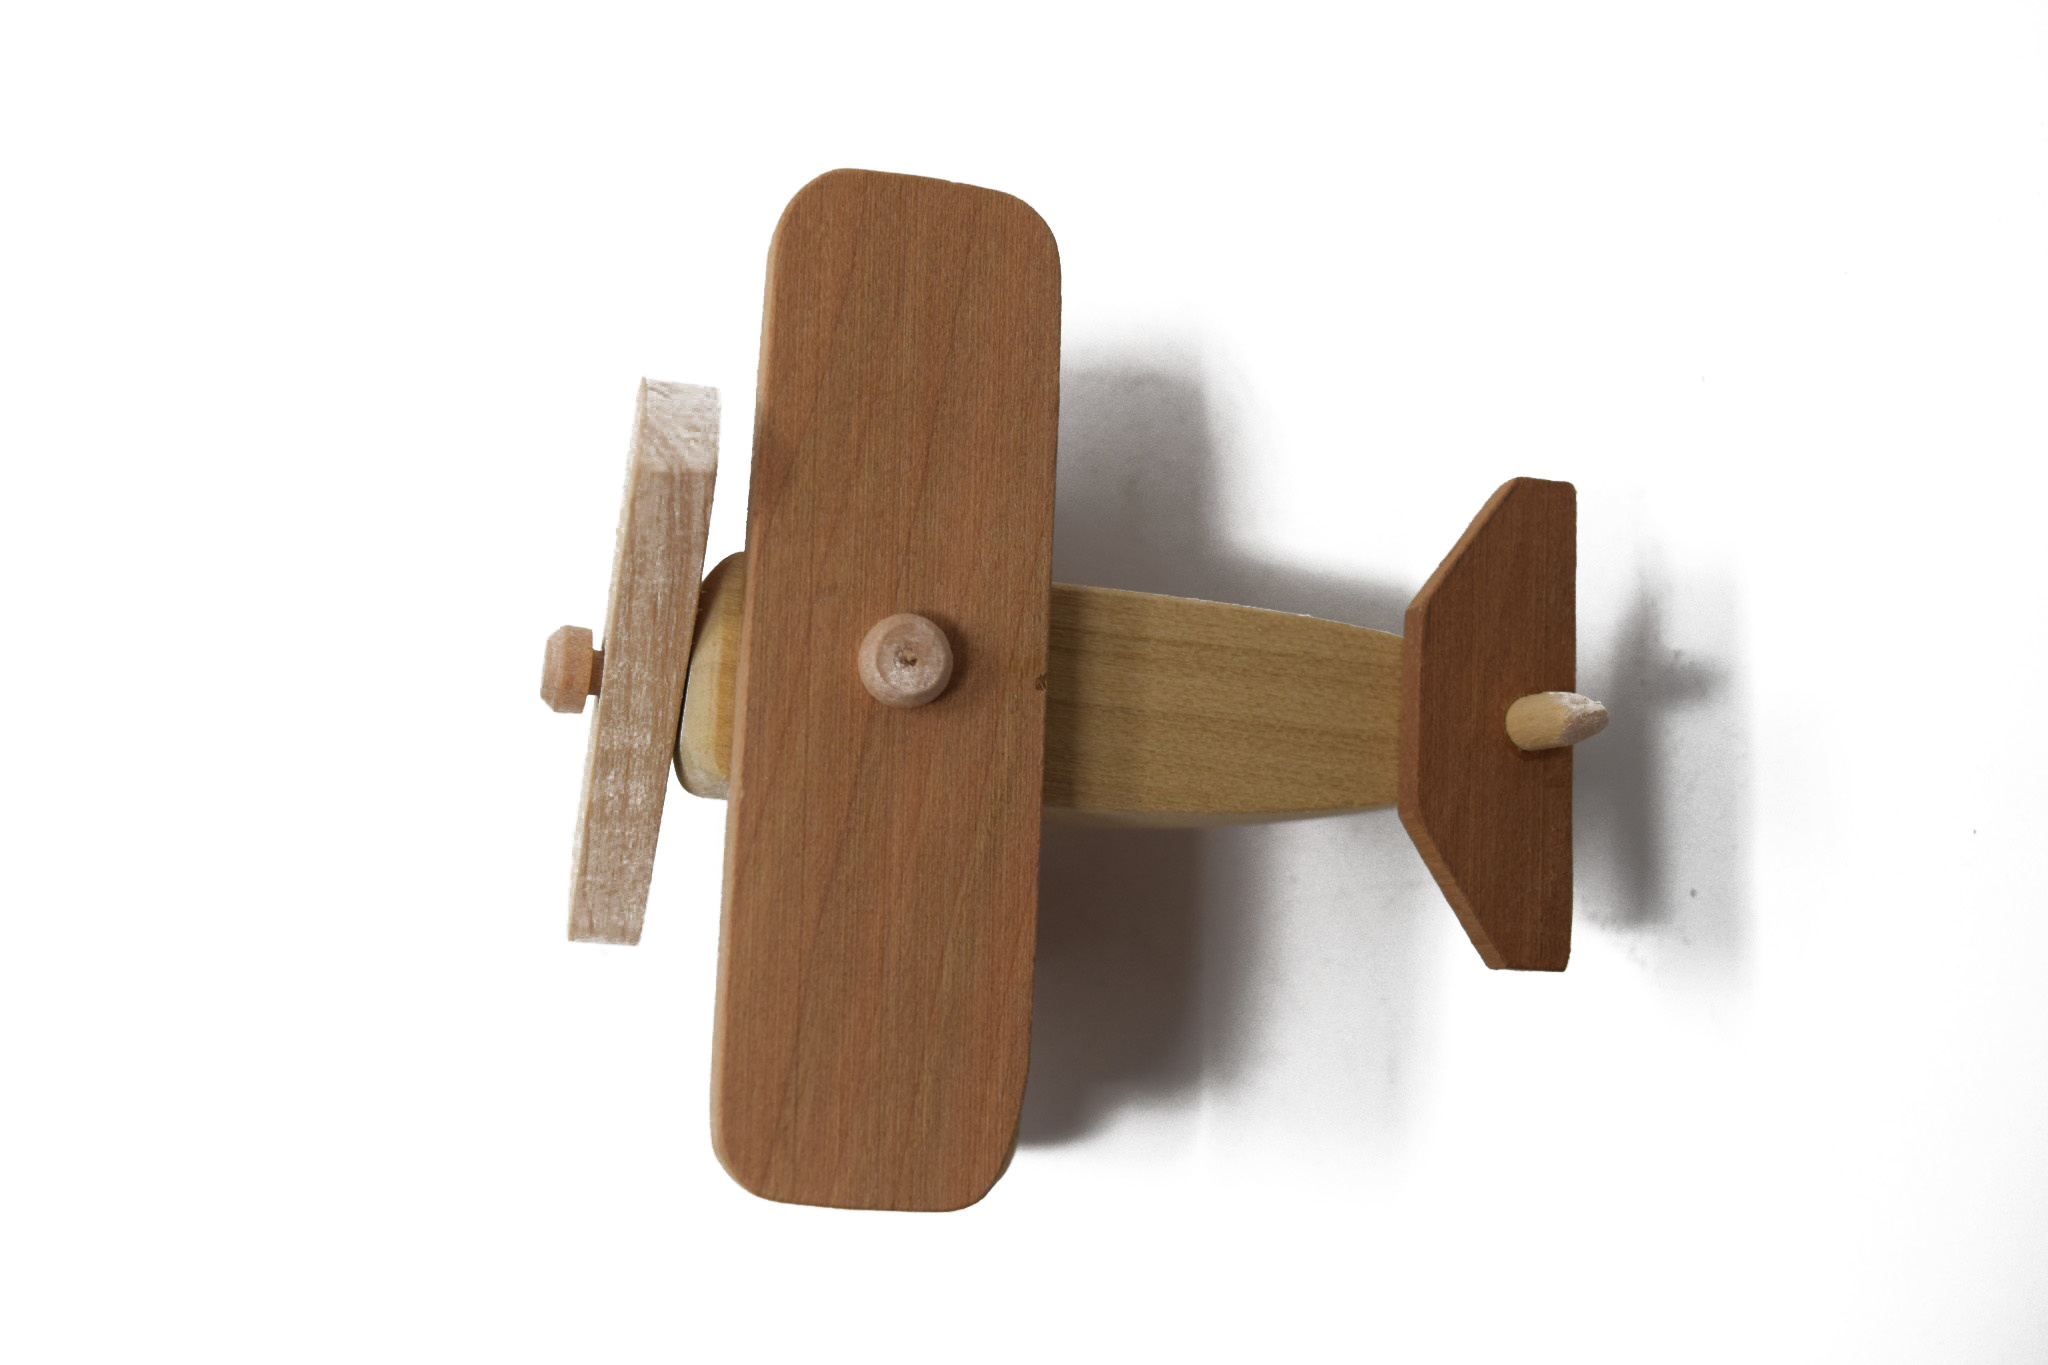 Wooden Airplane Toy-4